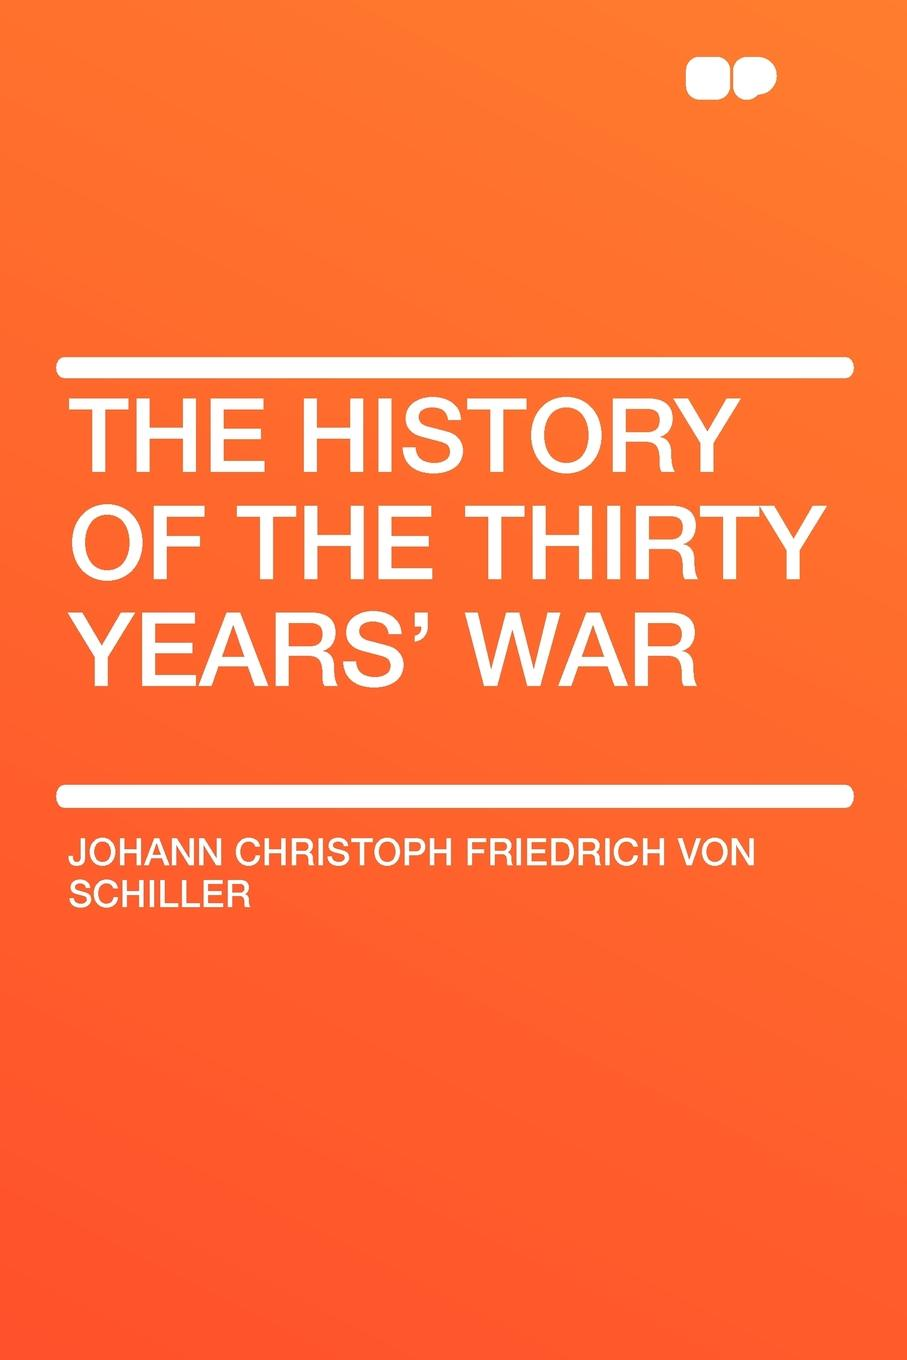 Johann Christoph Friedrich von Schiller The History of the Thirty Years' War friedrich von schiller history of the revolt of the netherlands volume 03